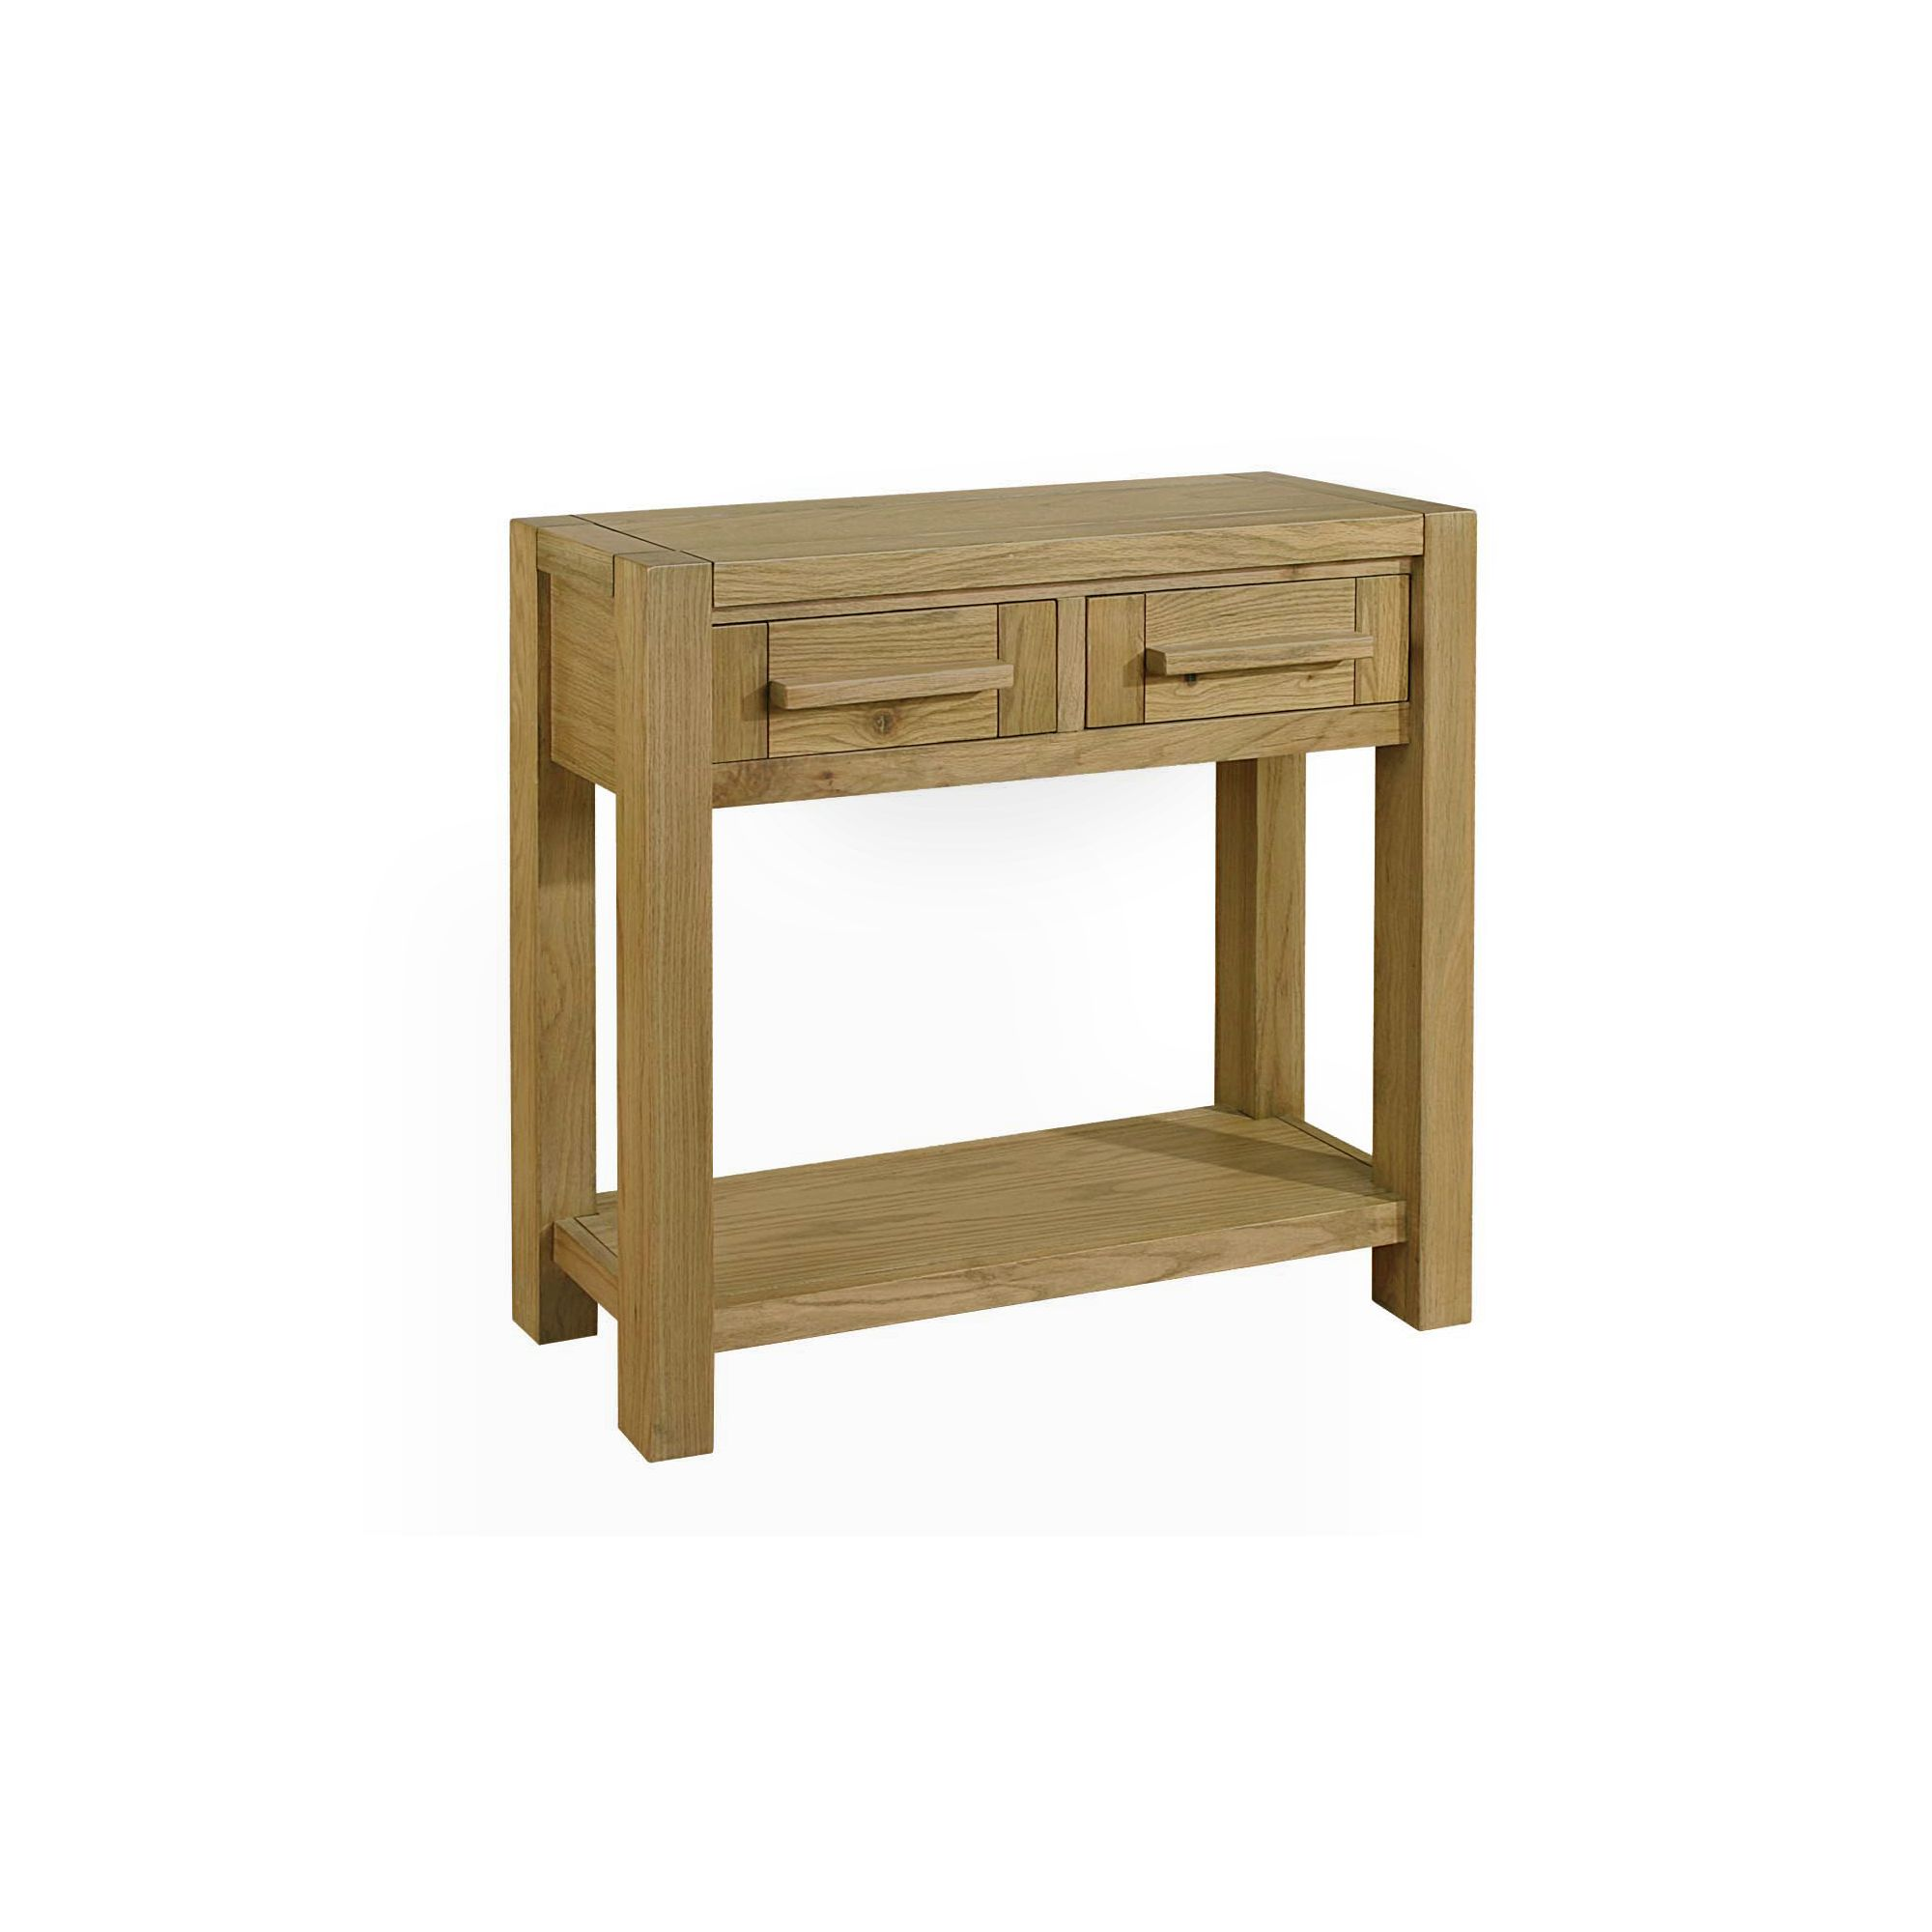 Alterton Furniture Jersey Oak Small Console Table at Tesco Direct